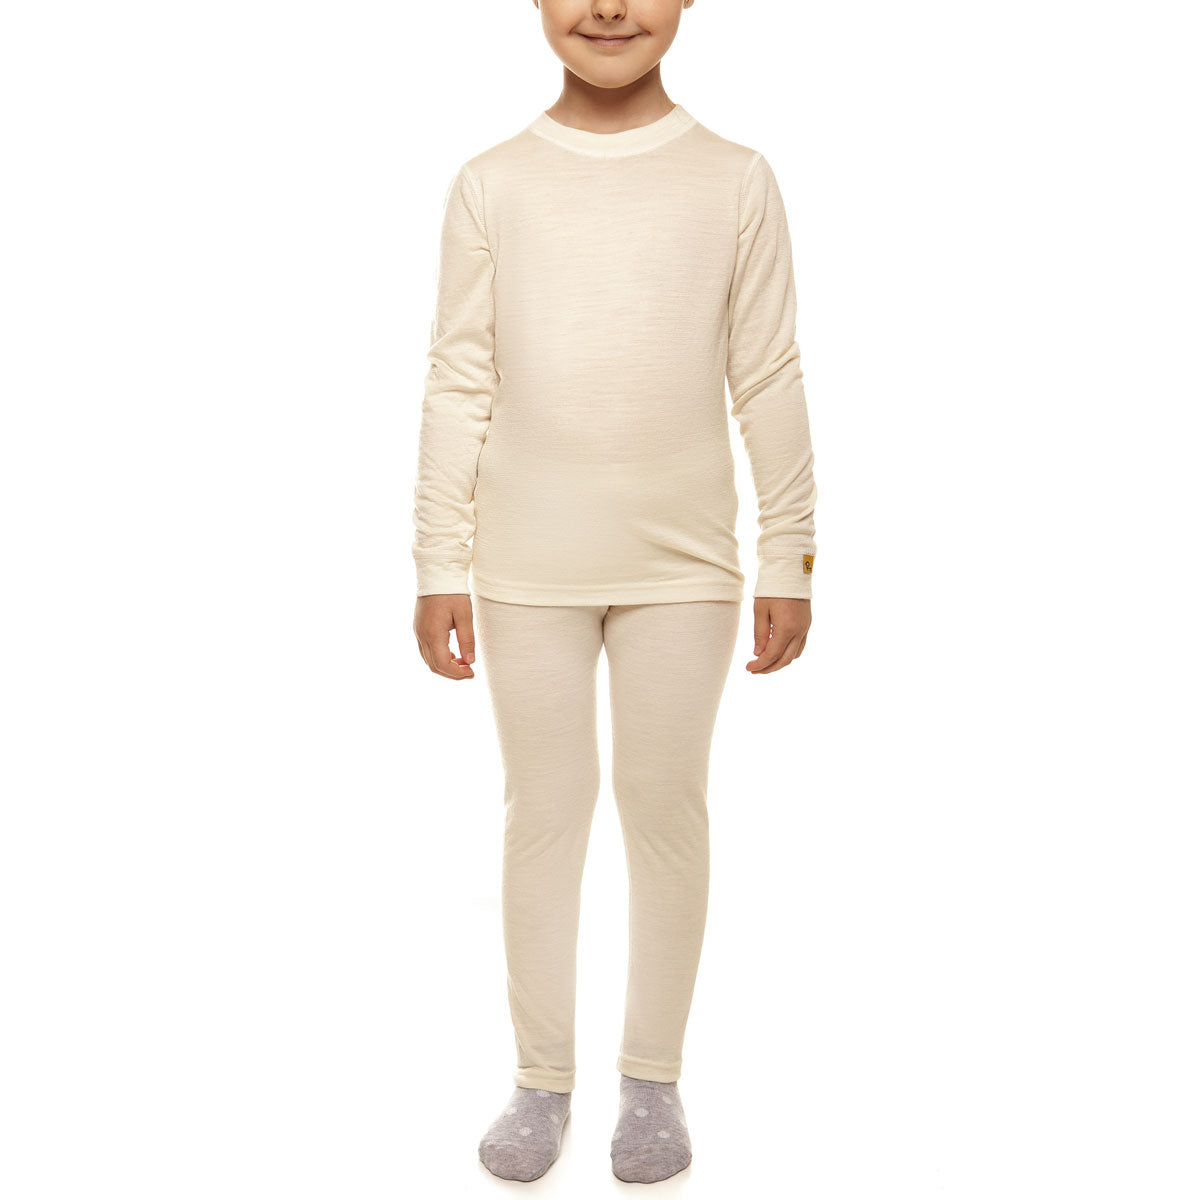 menique Kids' Merino 160 Long Sleeve Set Natural Color